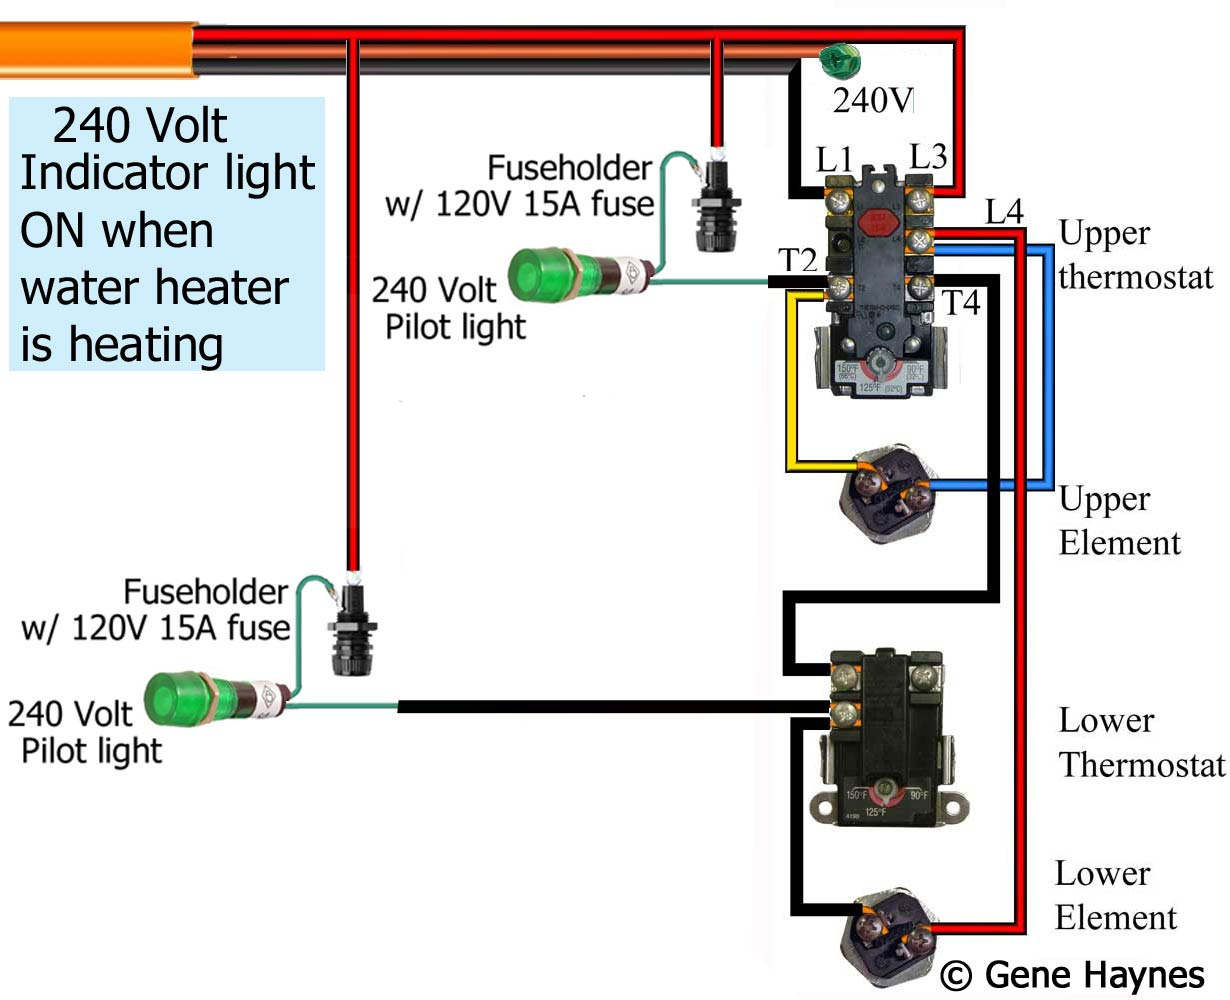 Switch With Pilot Light Wiring Diagram from waterheatertimer.org